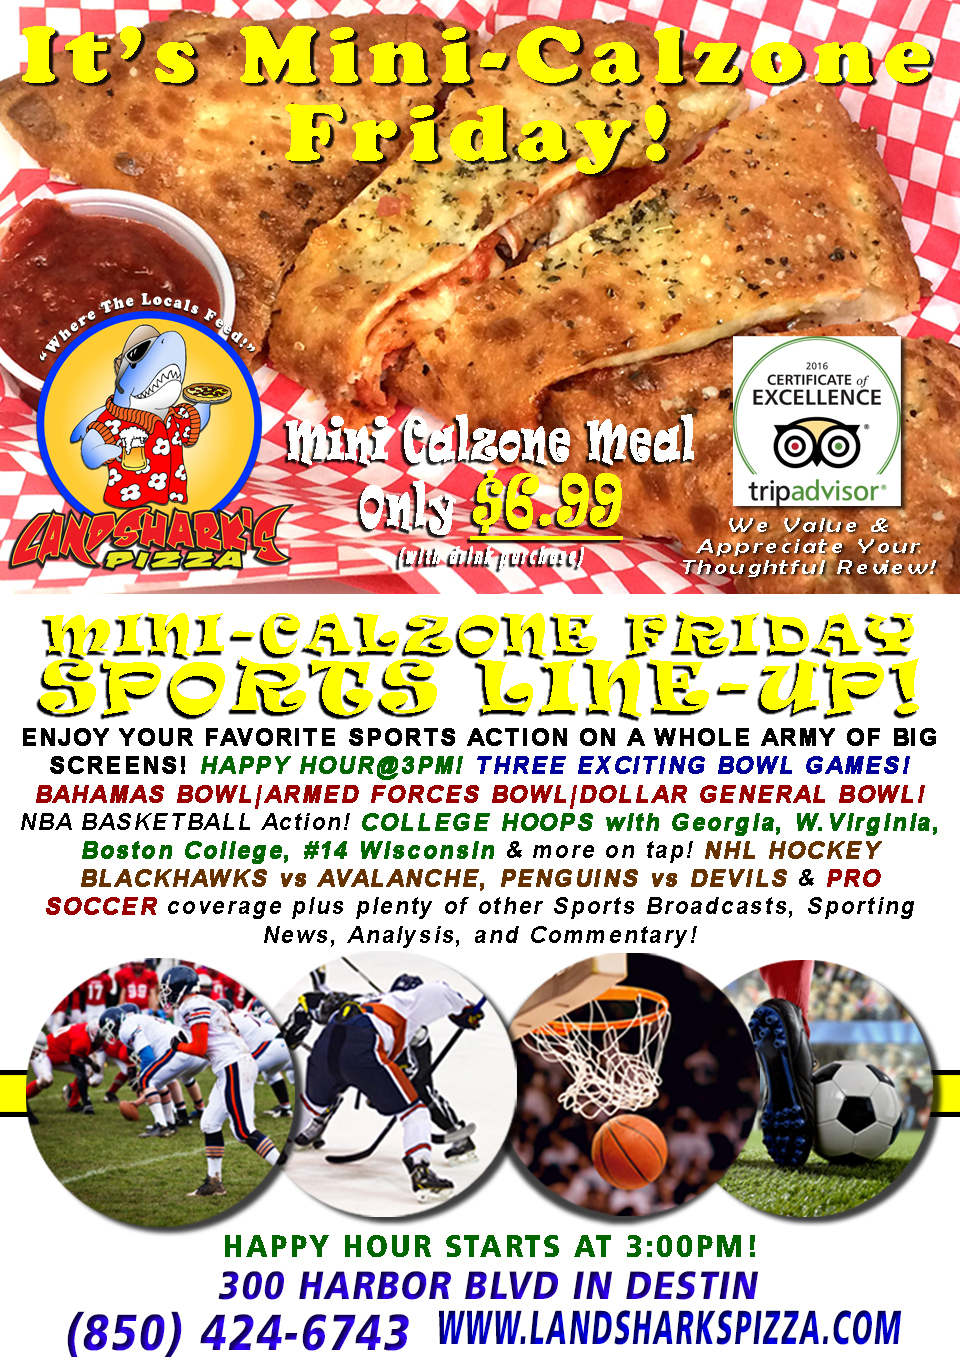 MERRY FREEDOM FRIDAY $6.99 Two-Topping Mini-Calzone,  THREE BOWL GAMES, FOOD & DRINK SPECIALS, NBA, NHL & MORE!